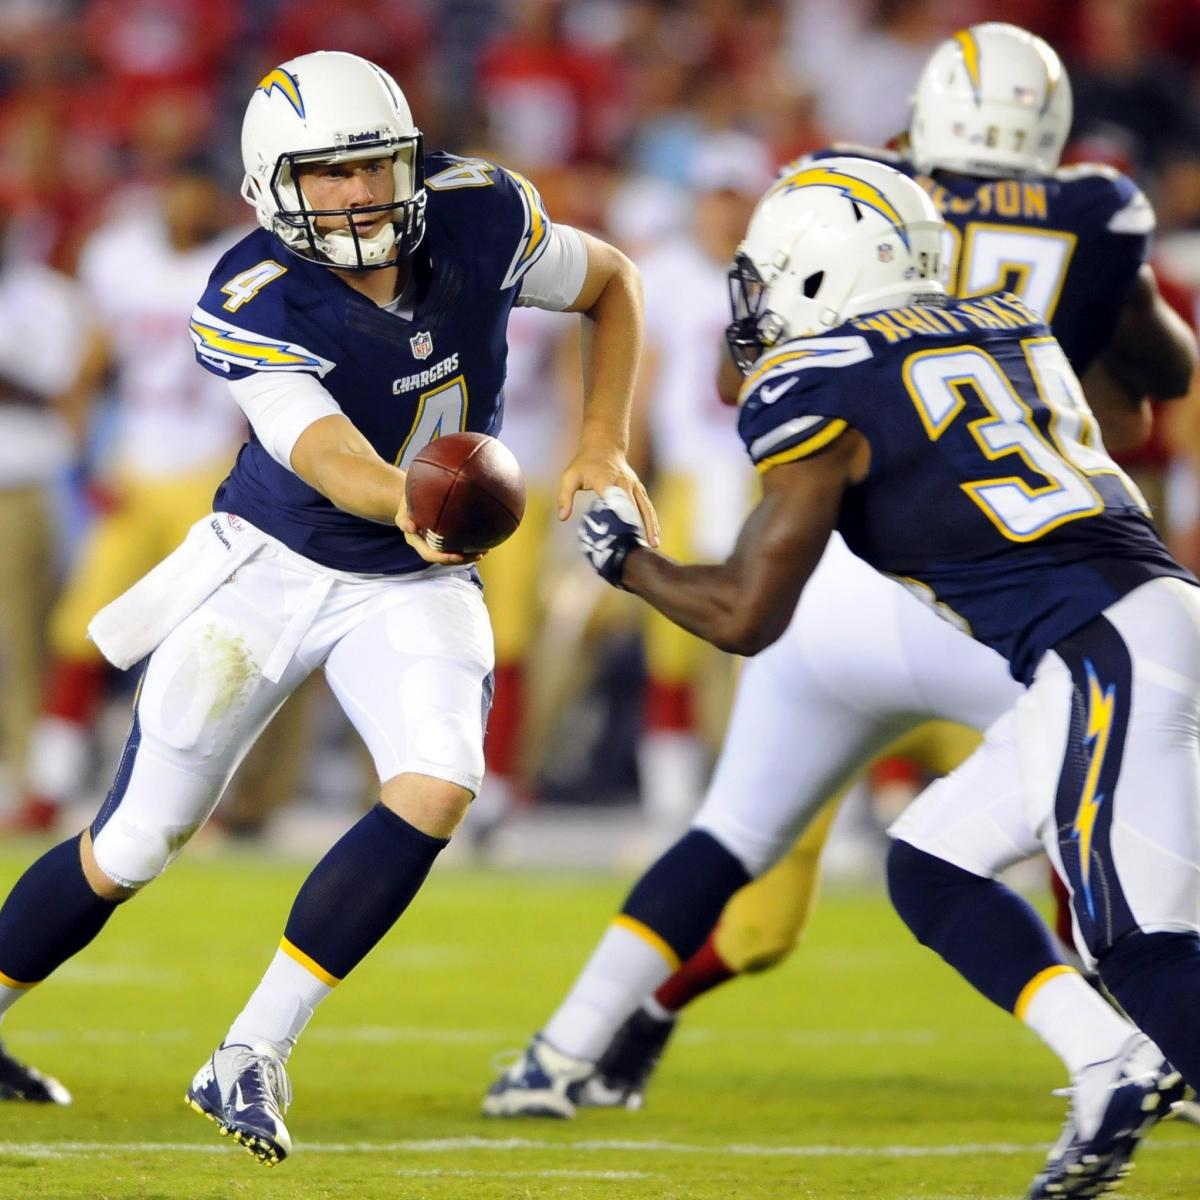 San Diego Chargers Depth Chart 2013: San Diego Chargers Team Roster: Report Card Grades For